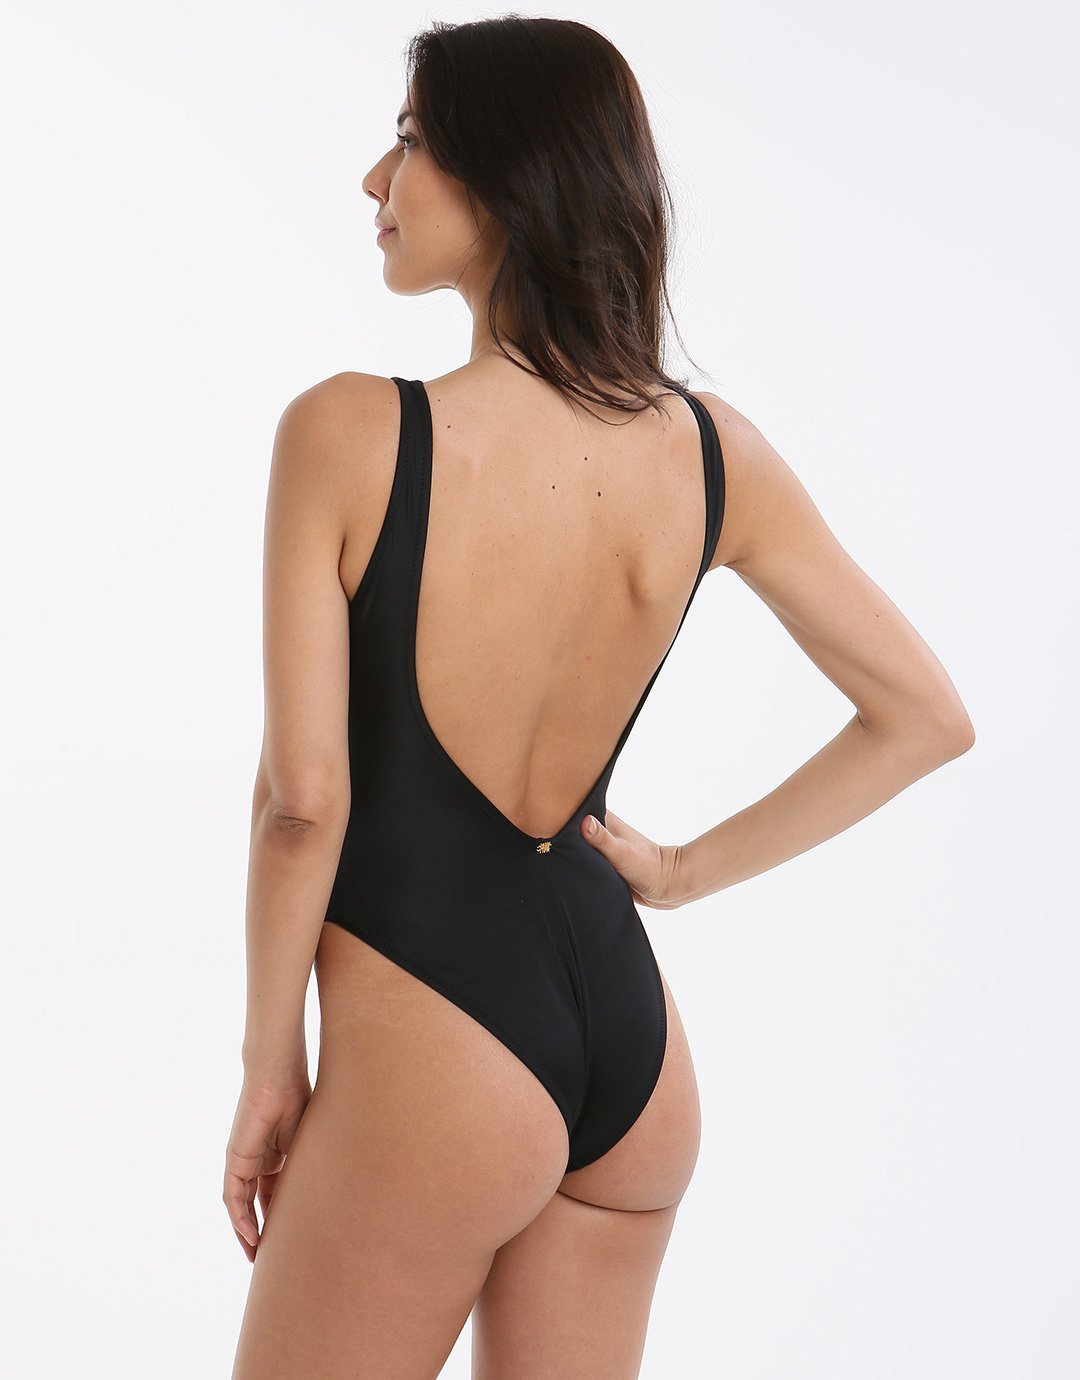 Phax Poons Lattice One Piece - Black